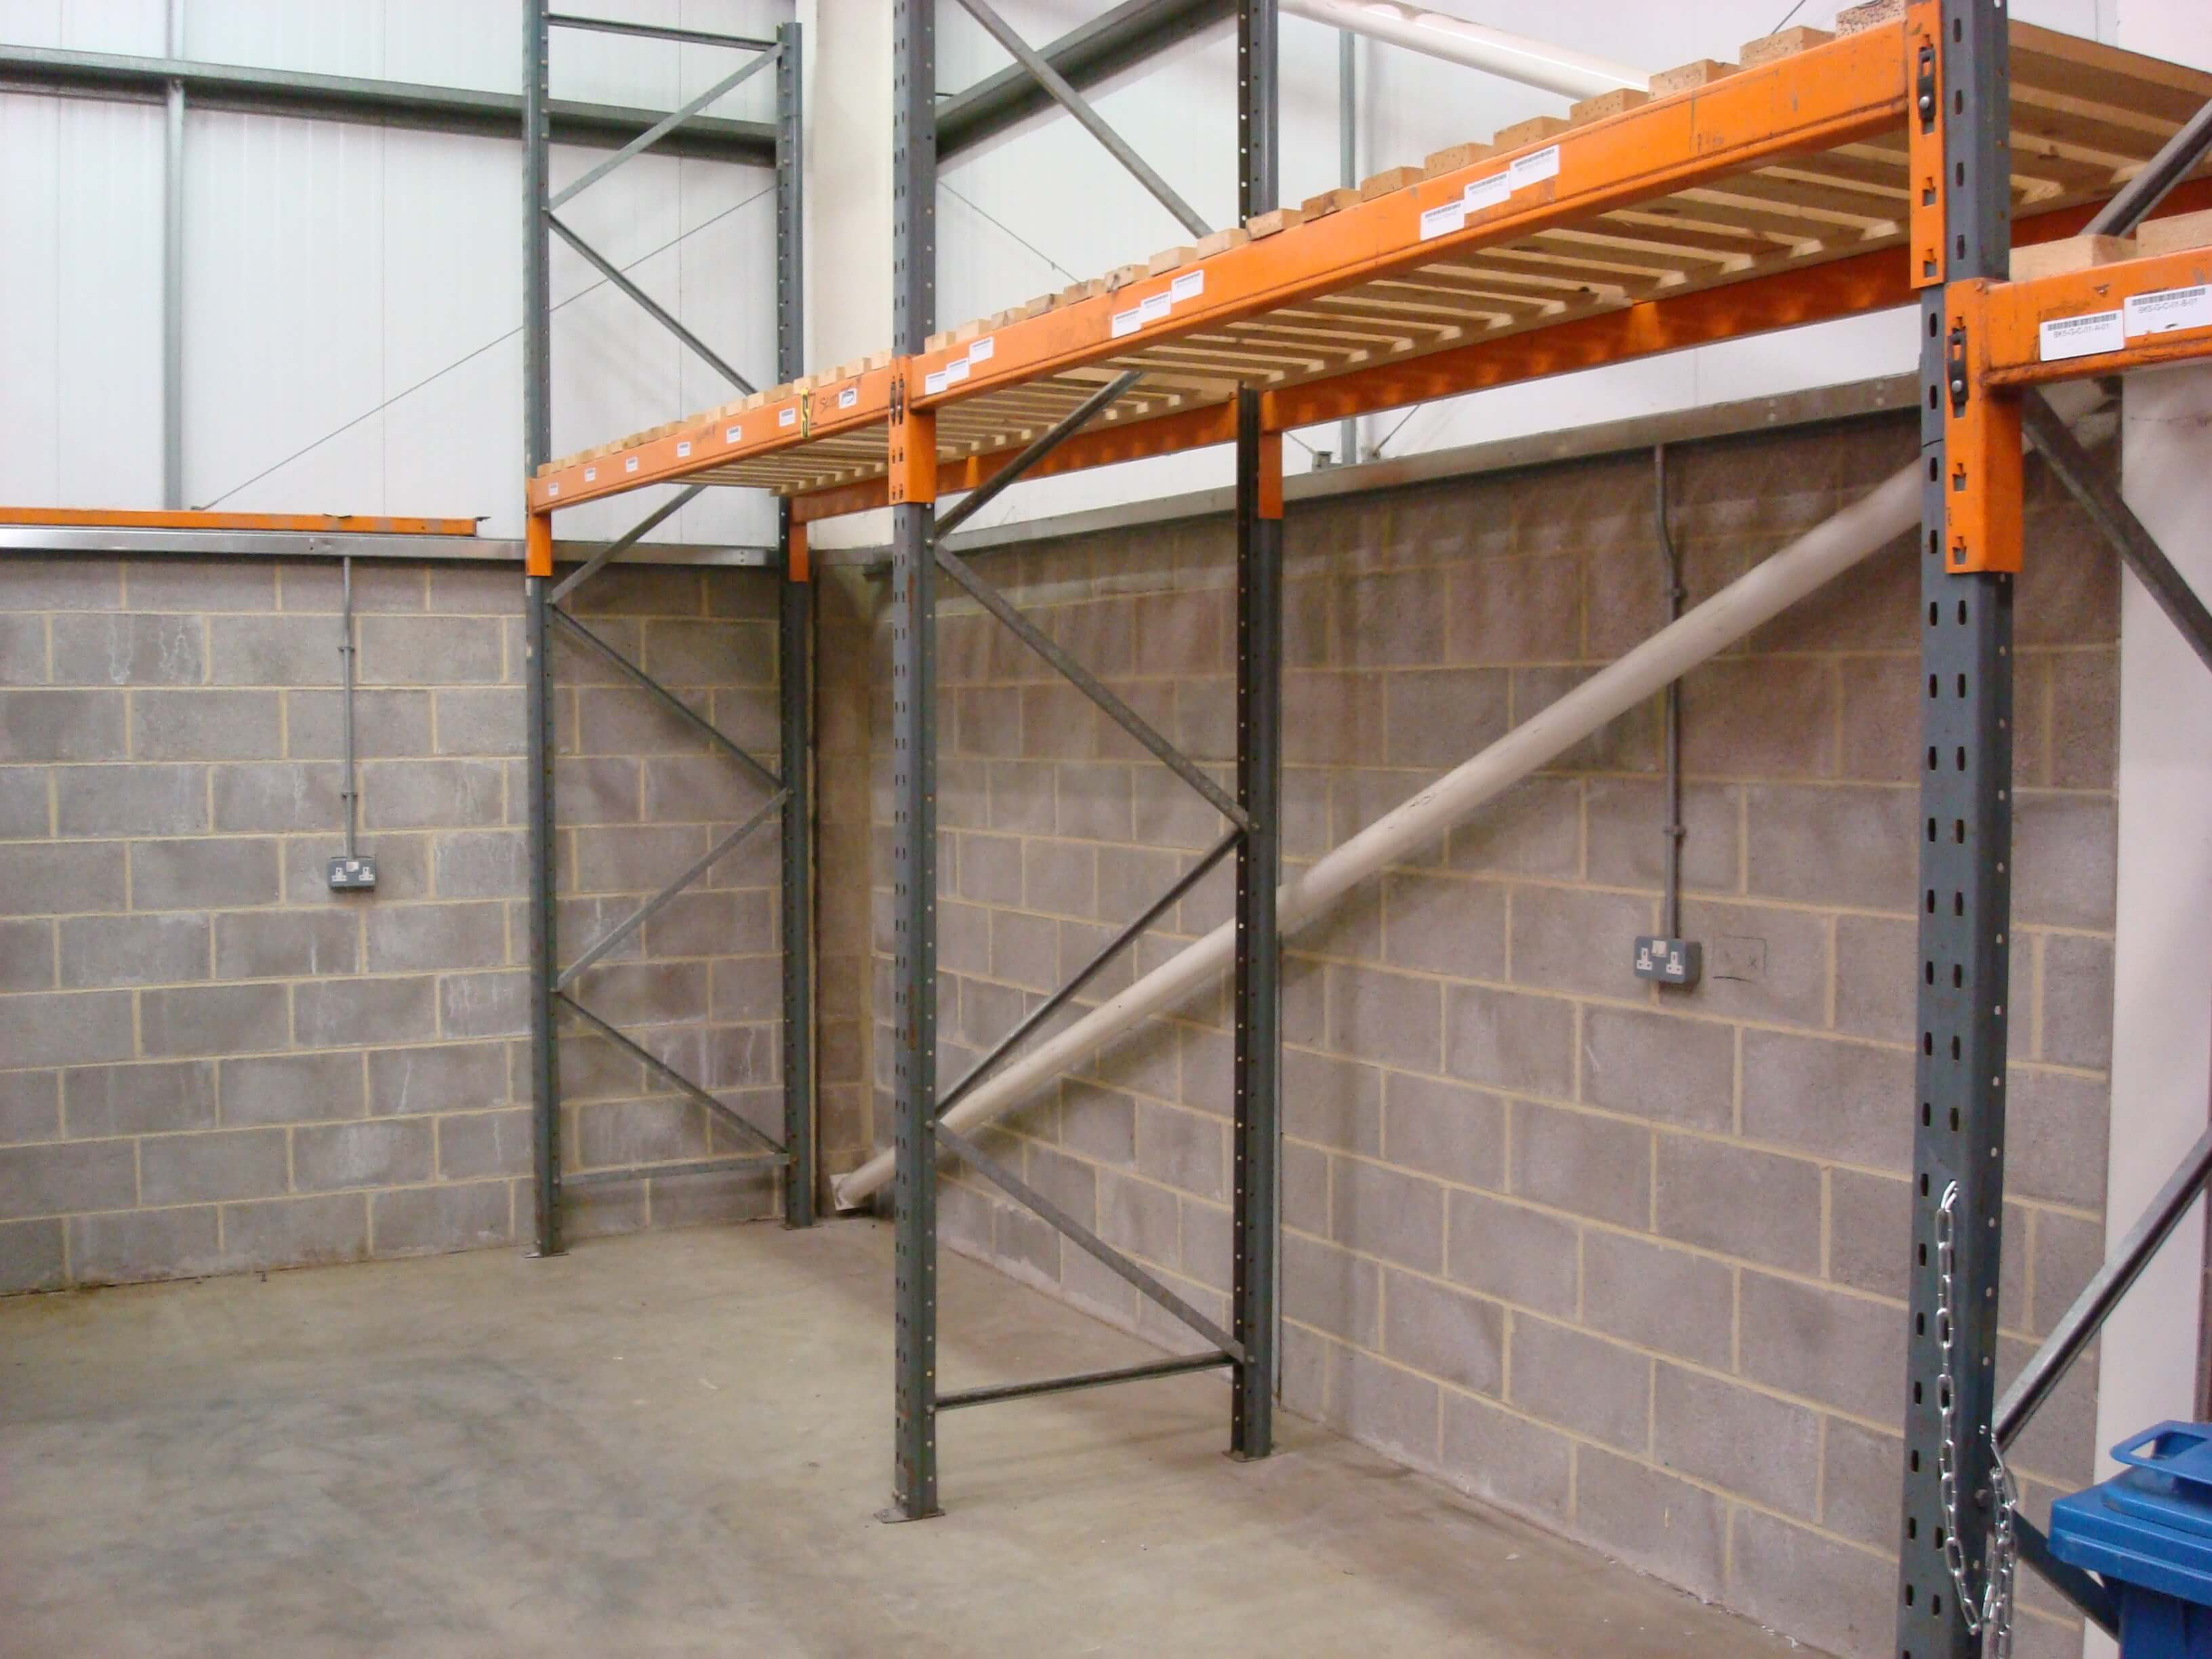 Existing warehouse with racking